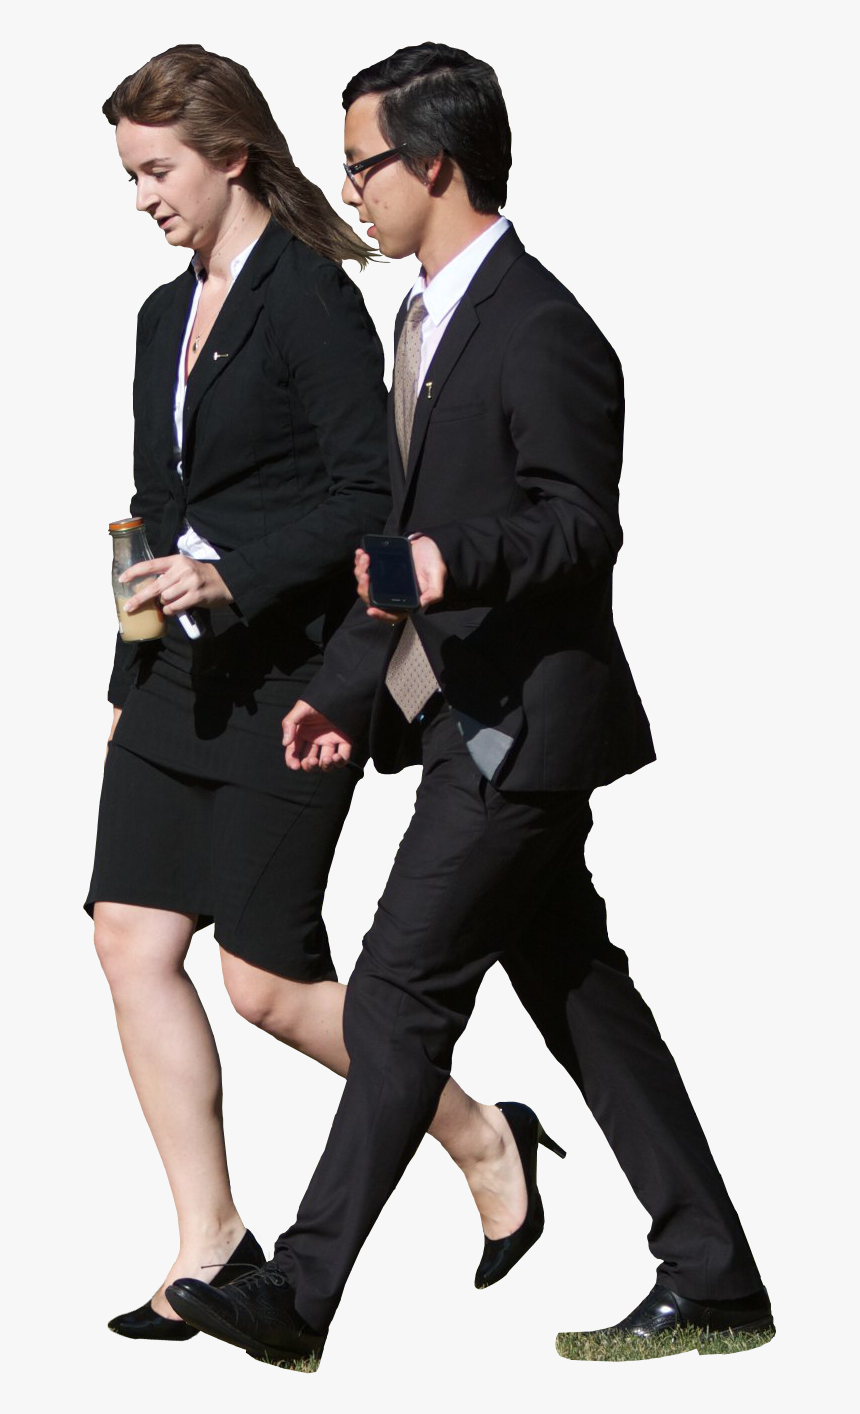 Download Business People Png Clipart.